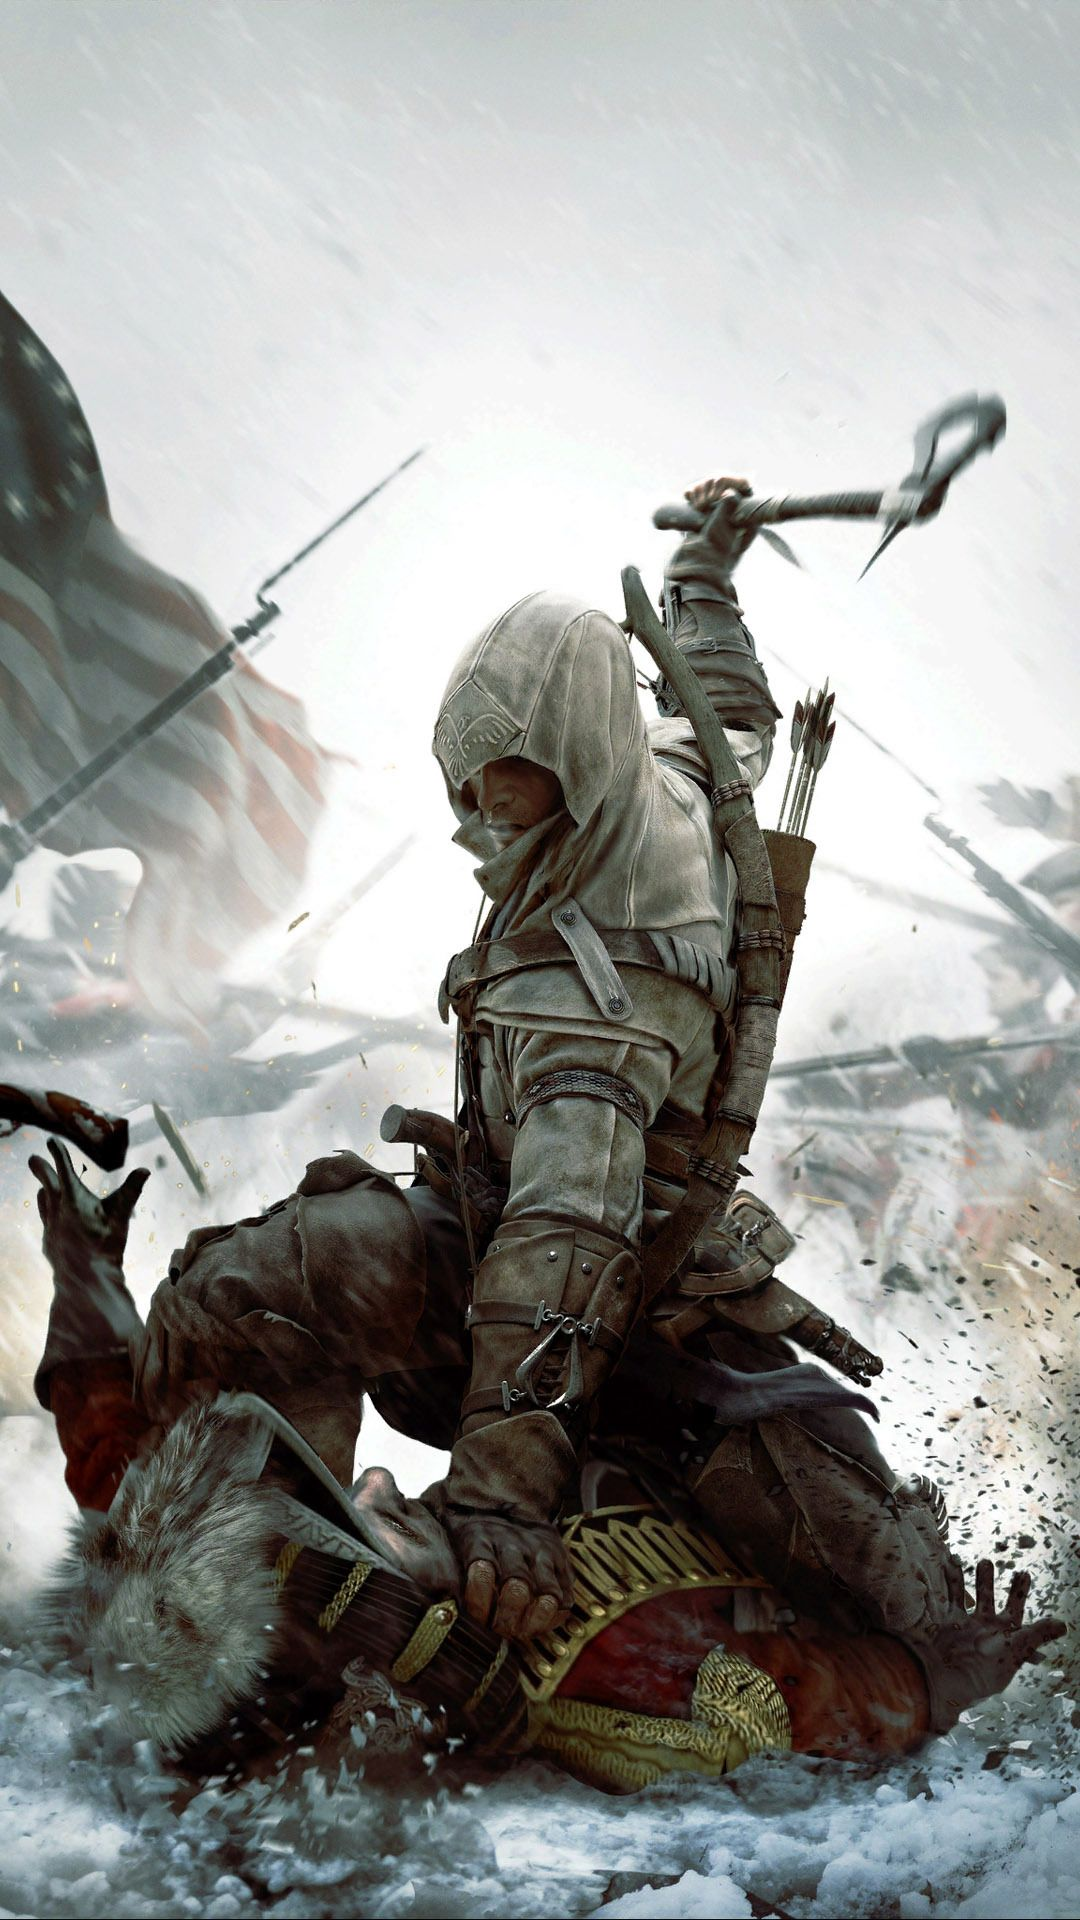 Connor Kenway Assassin S Creed Iii Mobile Wallpaper 12856